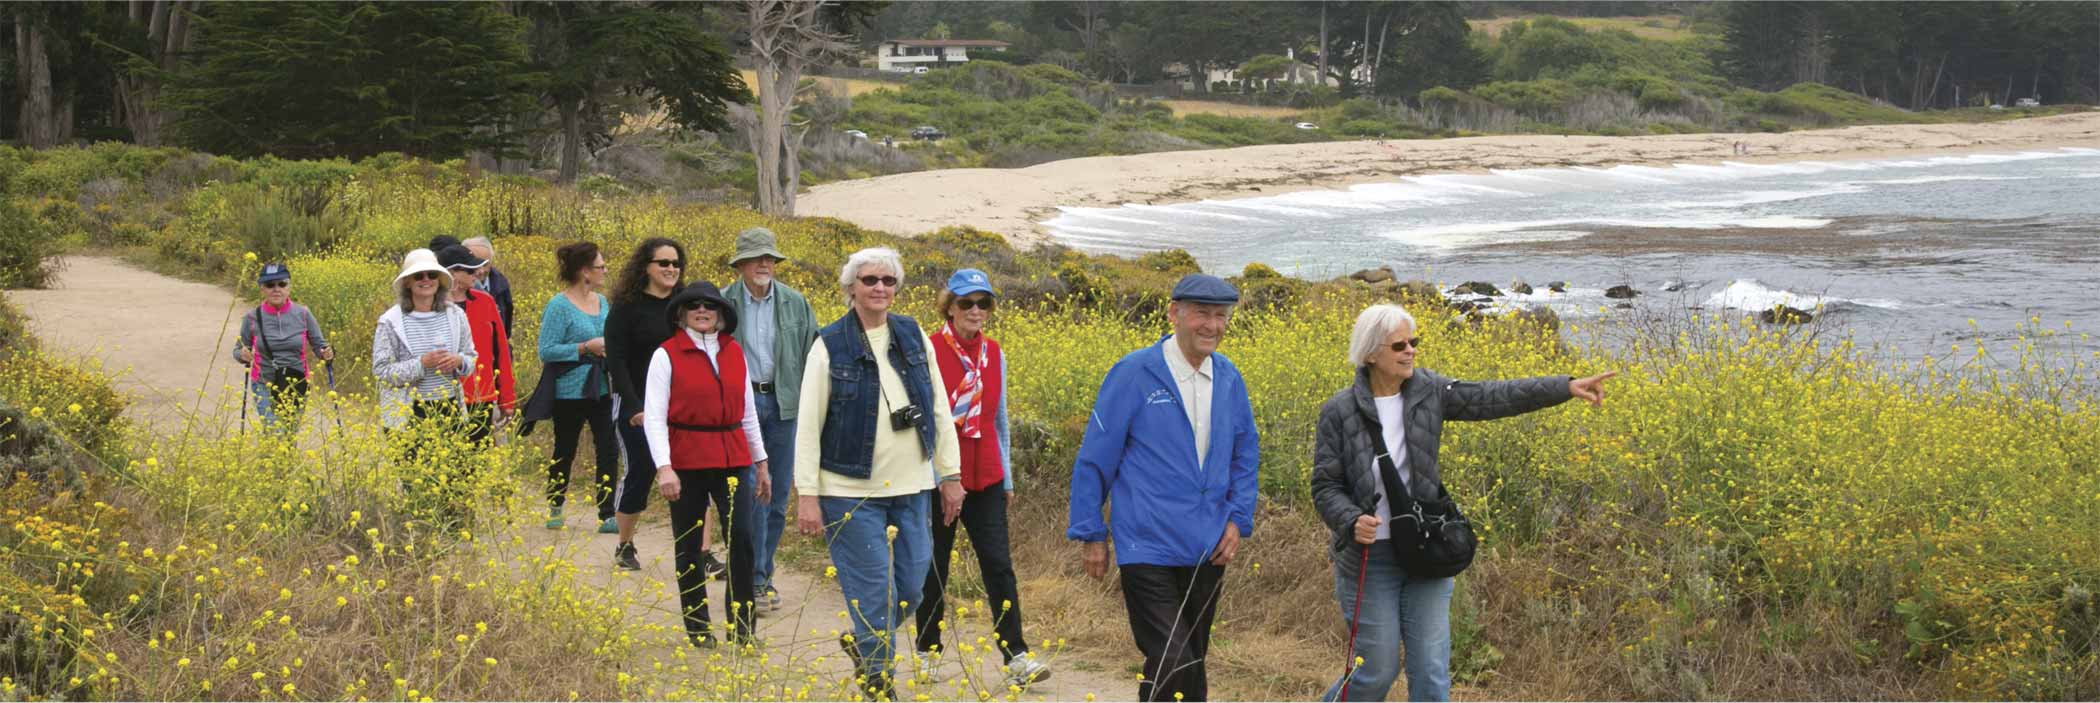 Carmel Foundation Walking Group walking near the ocean